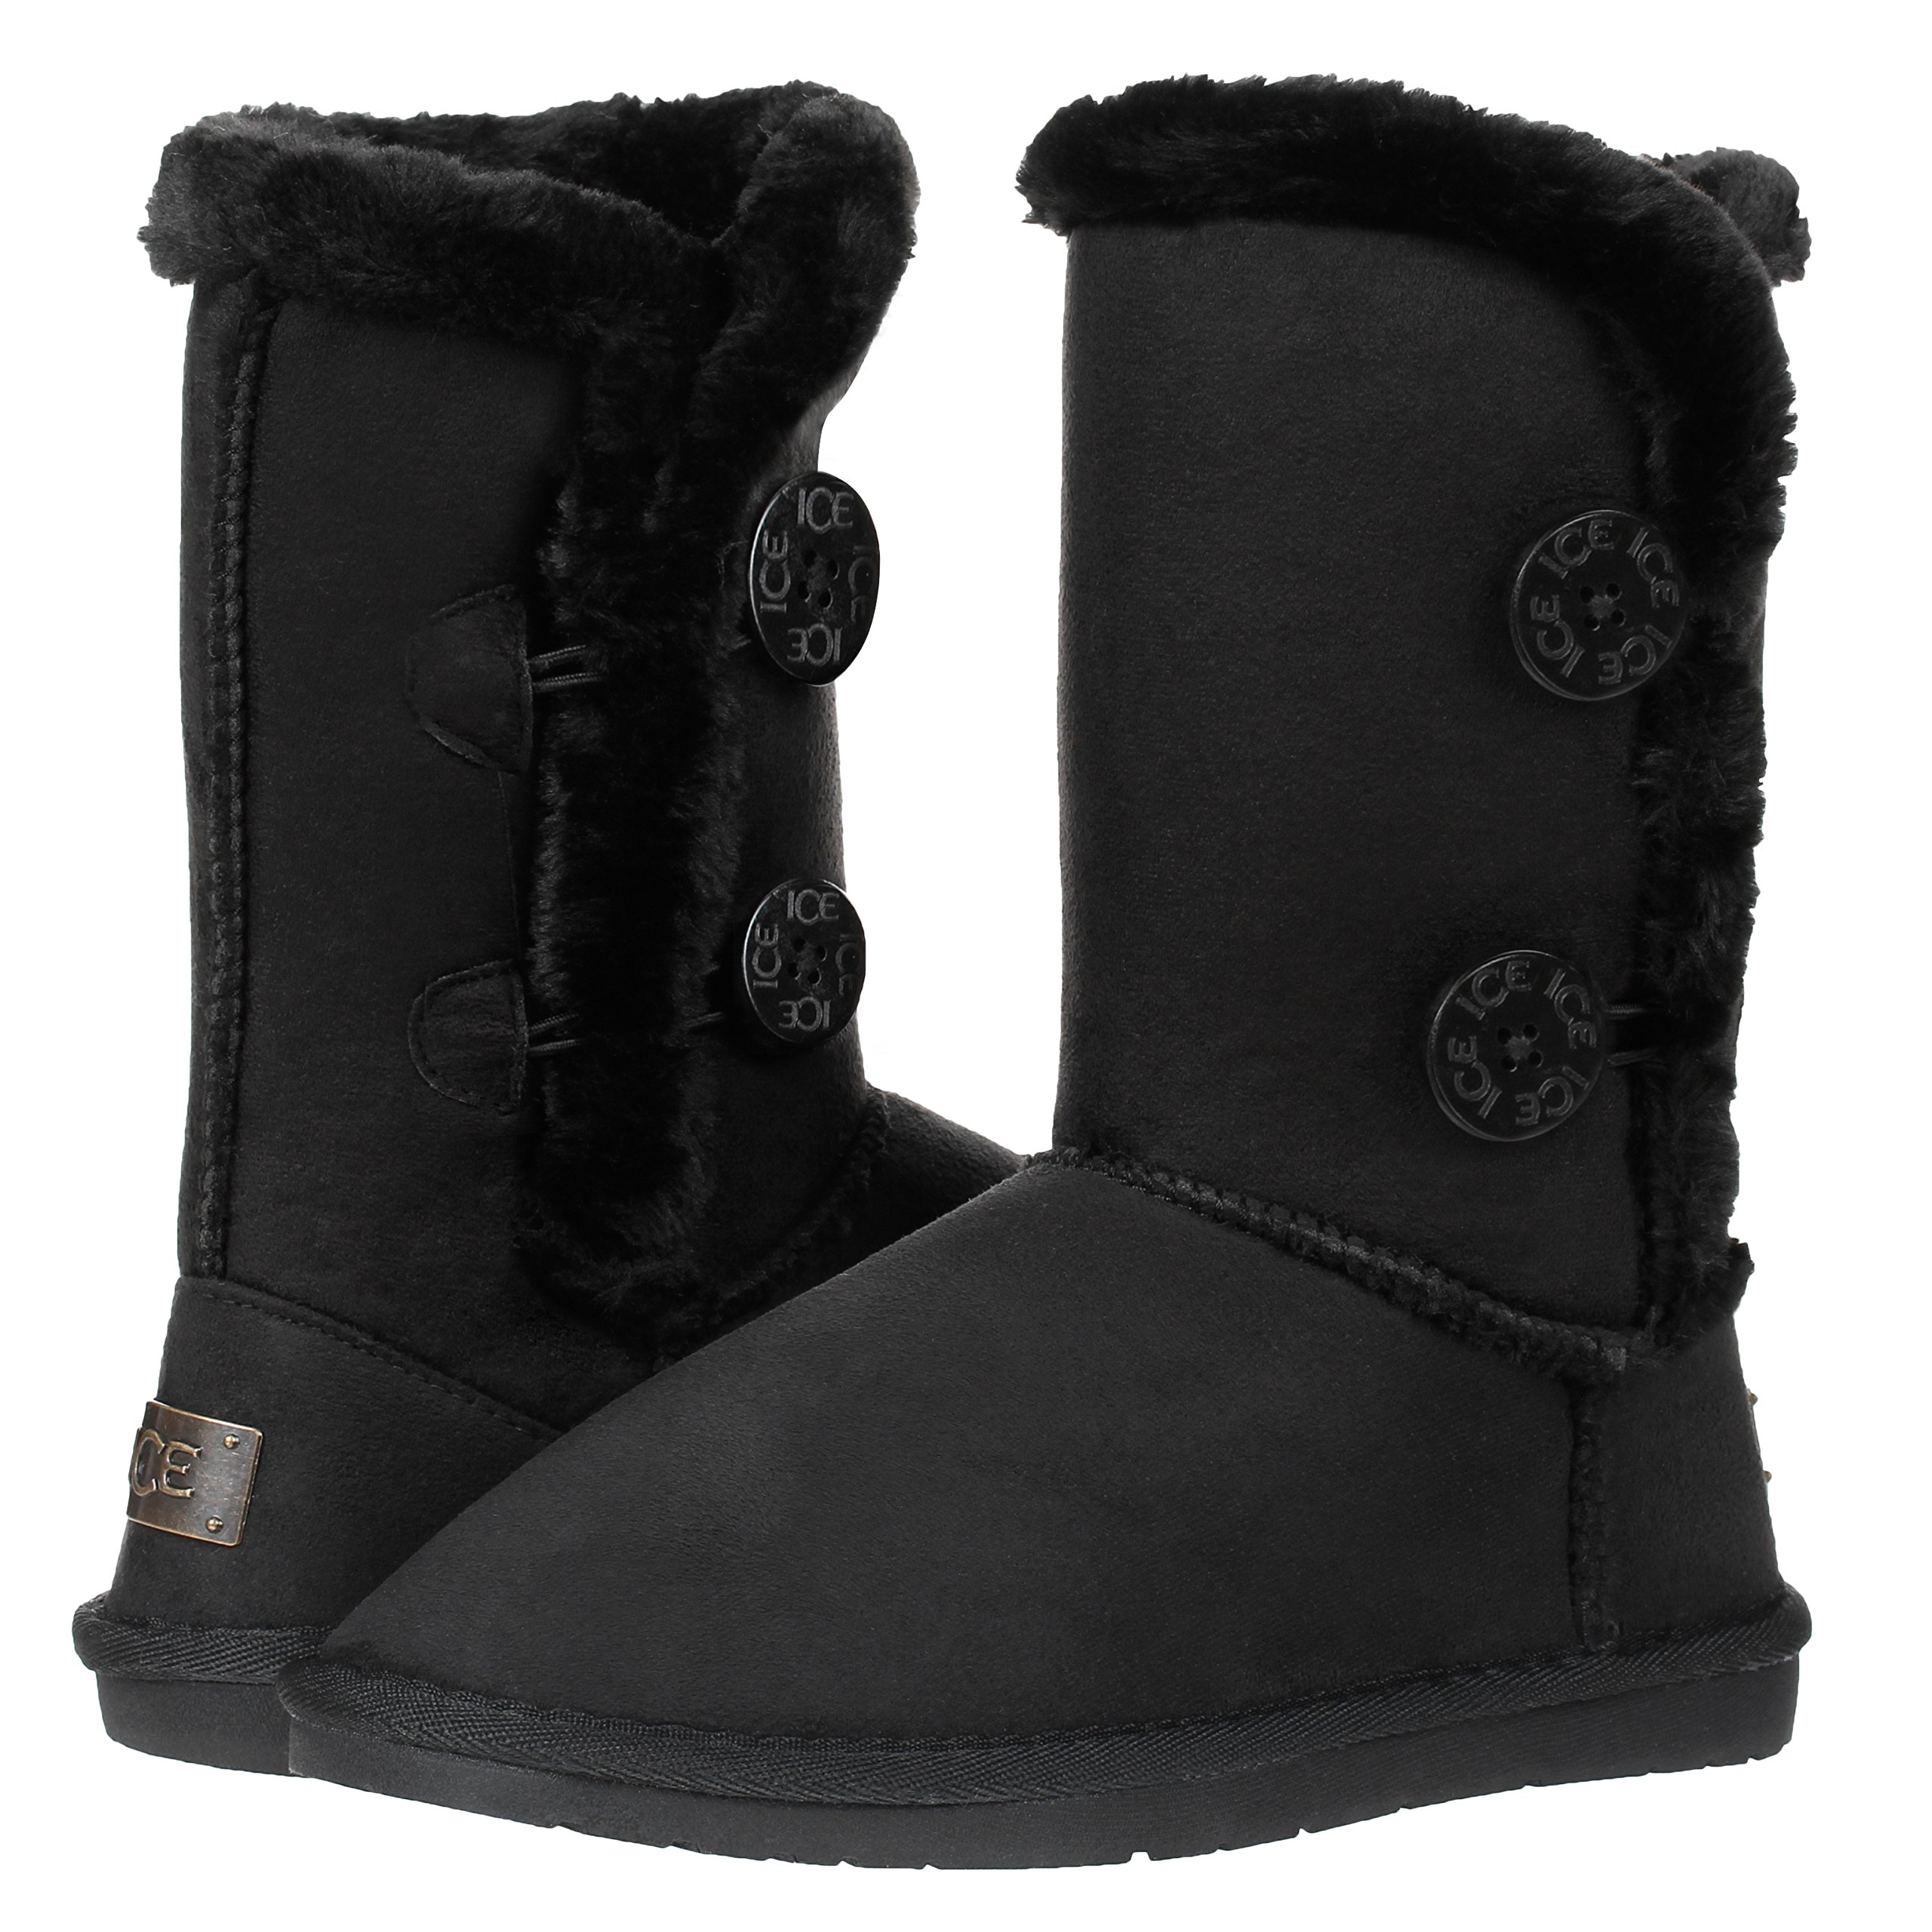 CLOVERLY Women's Twin Button Fully Fur Lined Waterproof Winter Snow Classic Boots (10, Black)